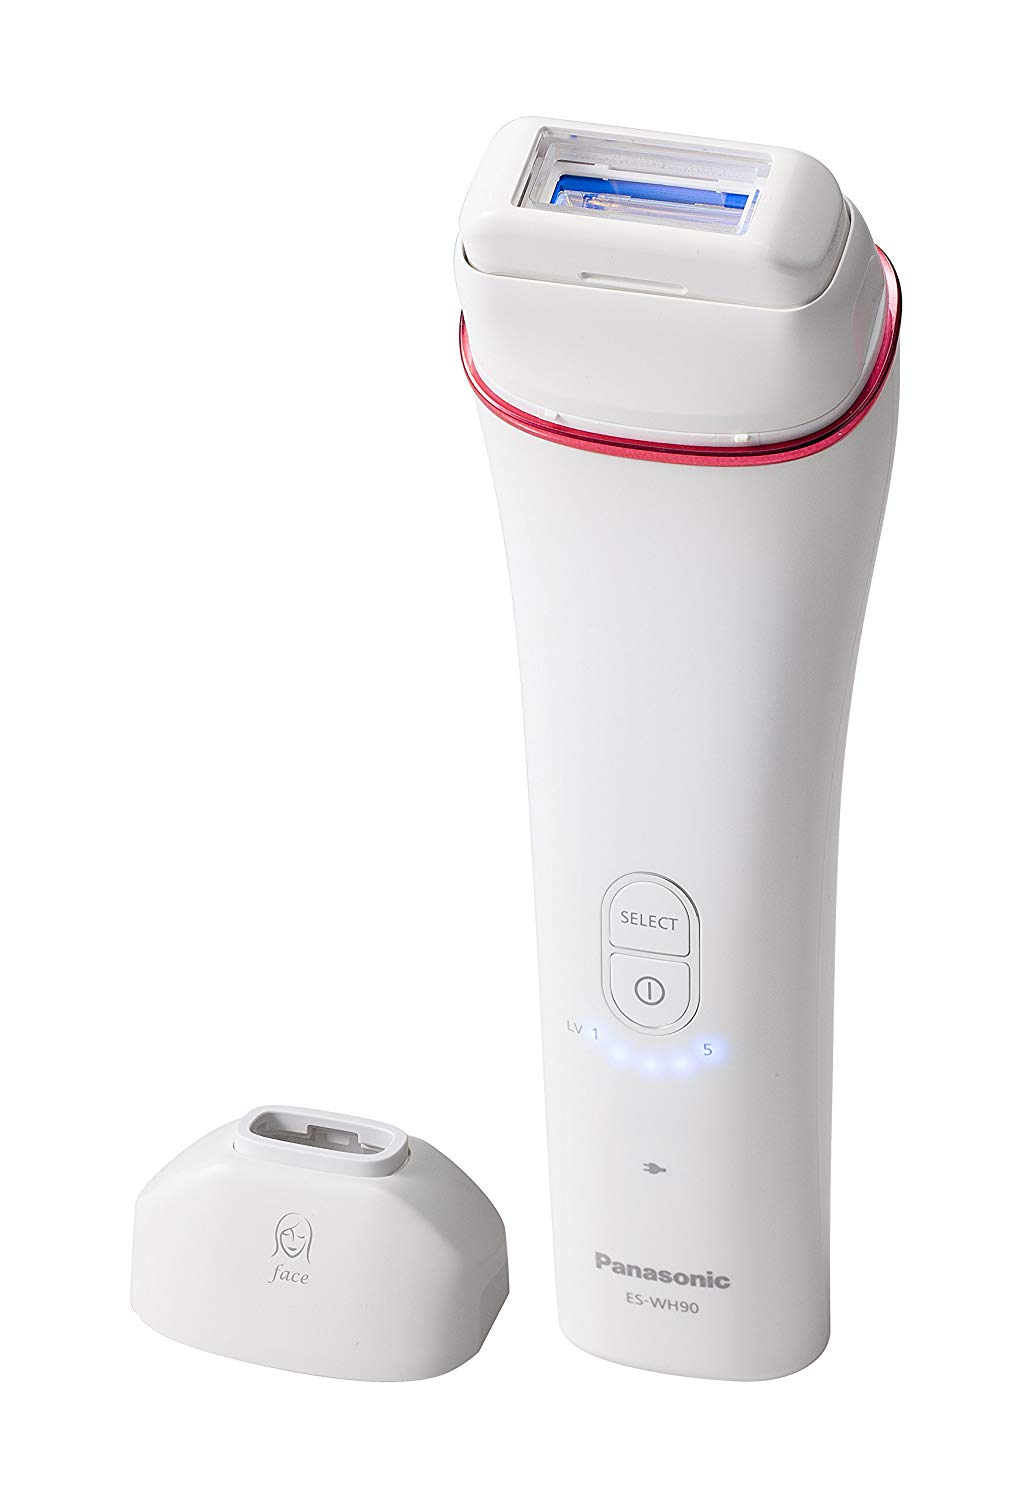 Panasonic ES-WH90 Cordless IPL Hair Removal System with Facial attachment Up to 70% OFF